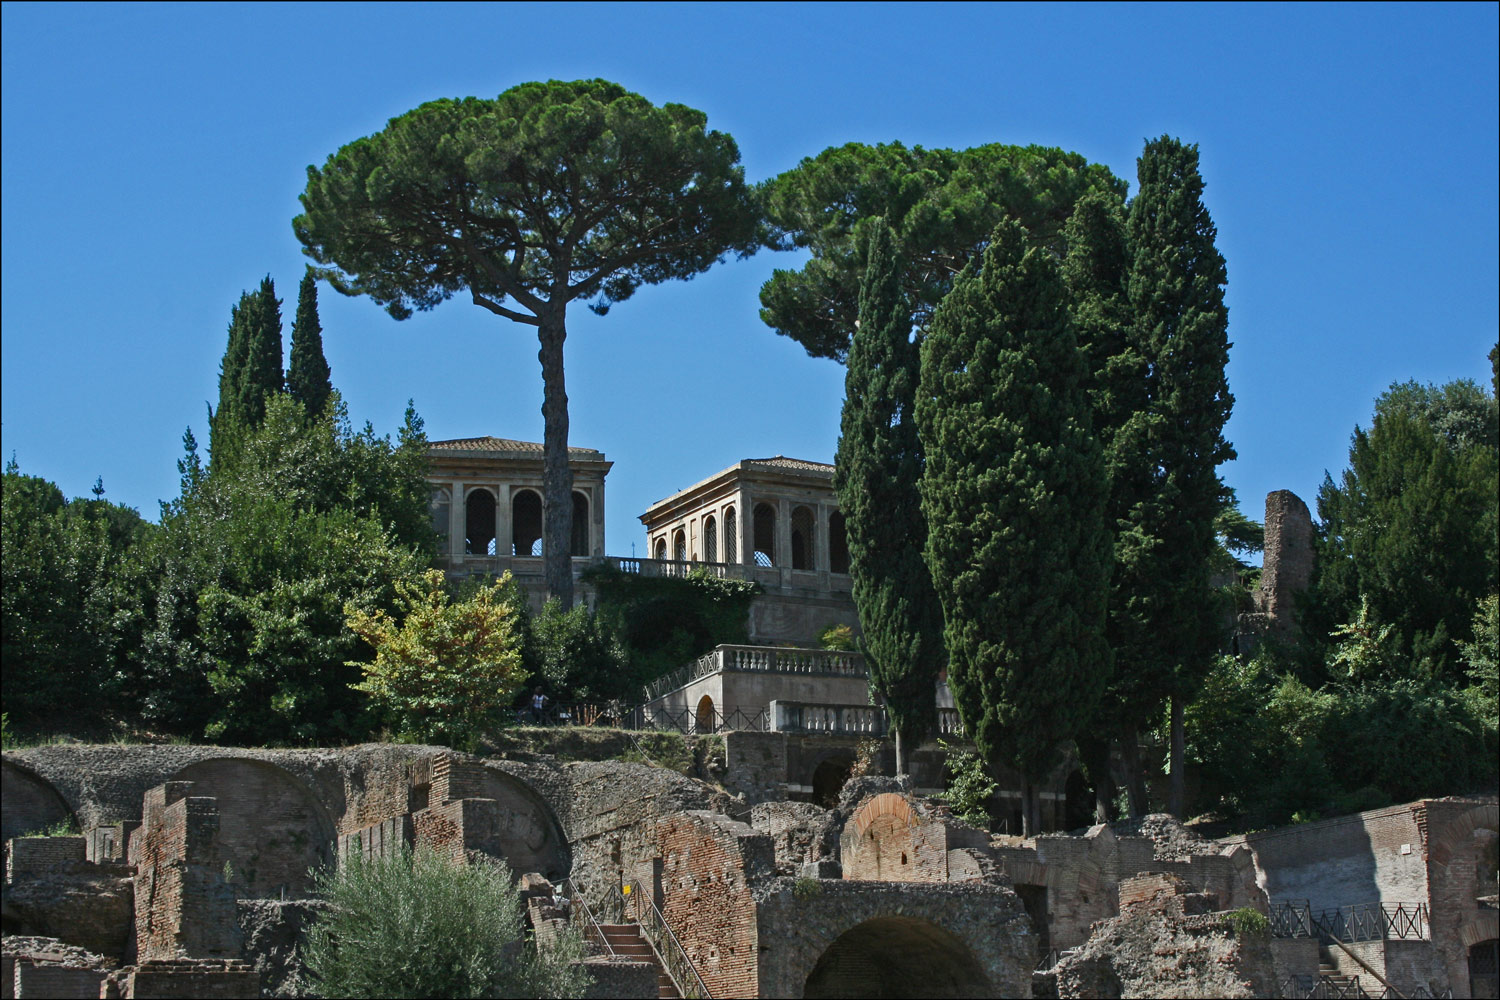 The Farnese Gardens from the Roman Forum